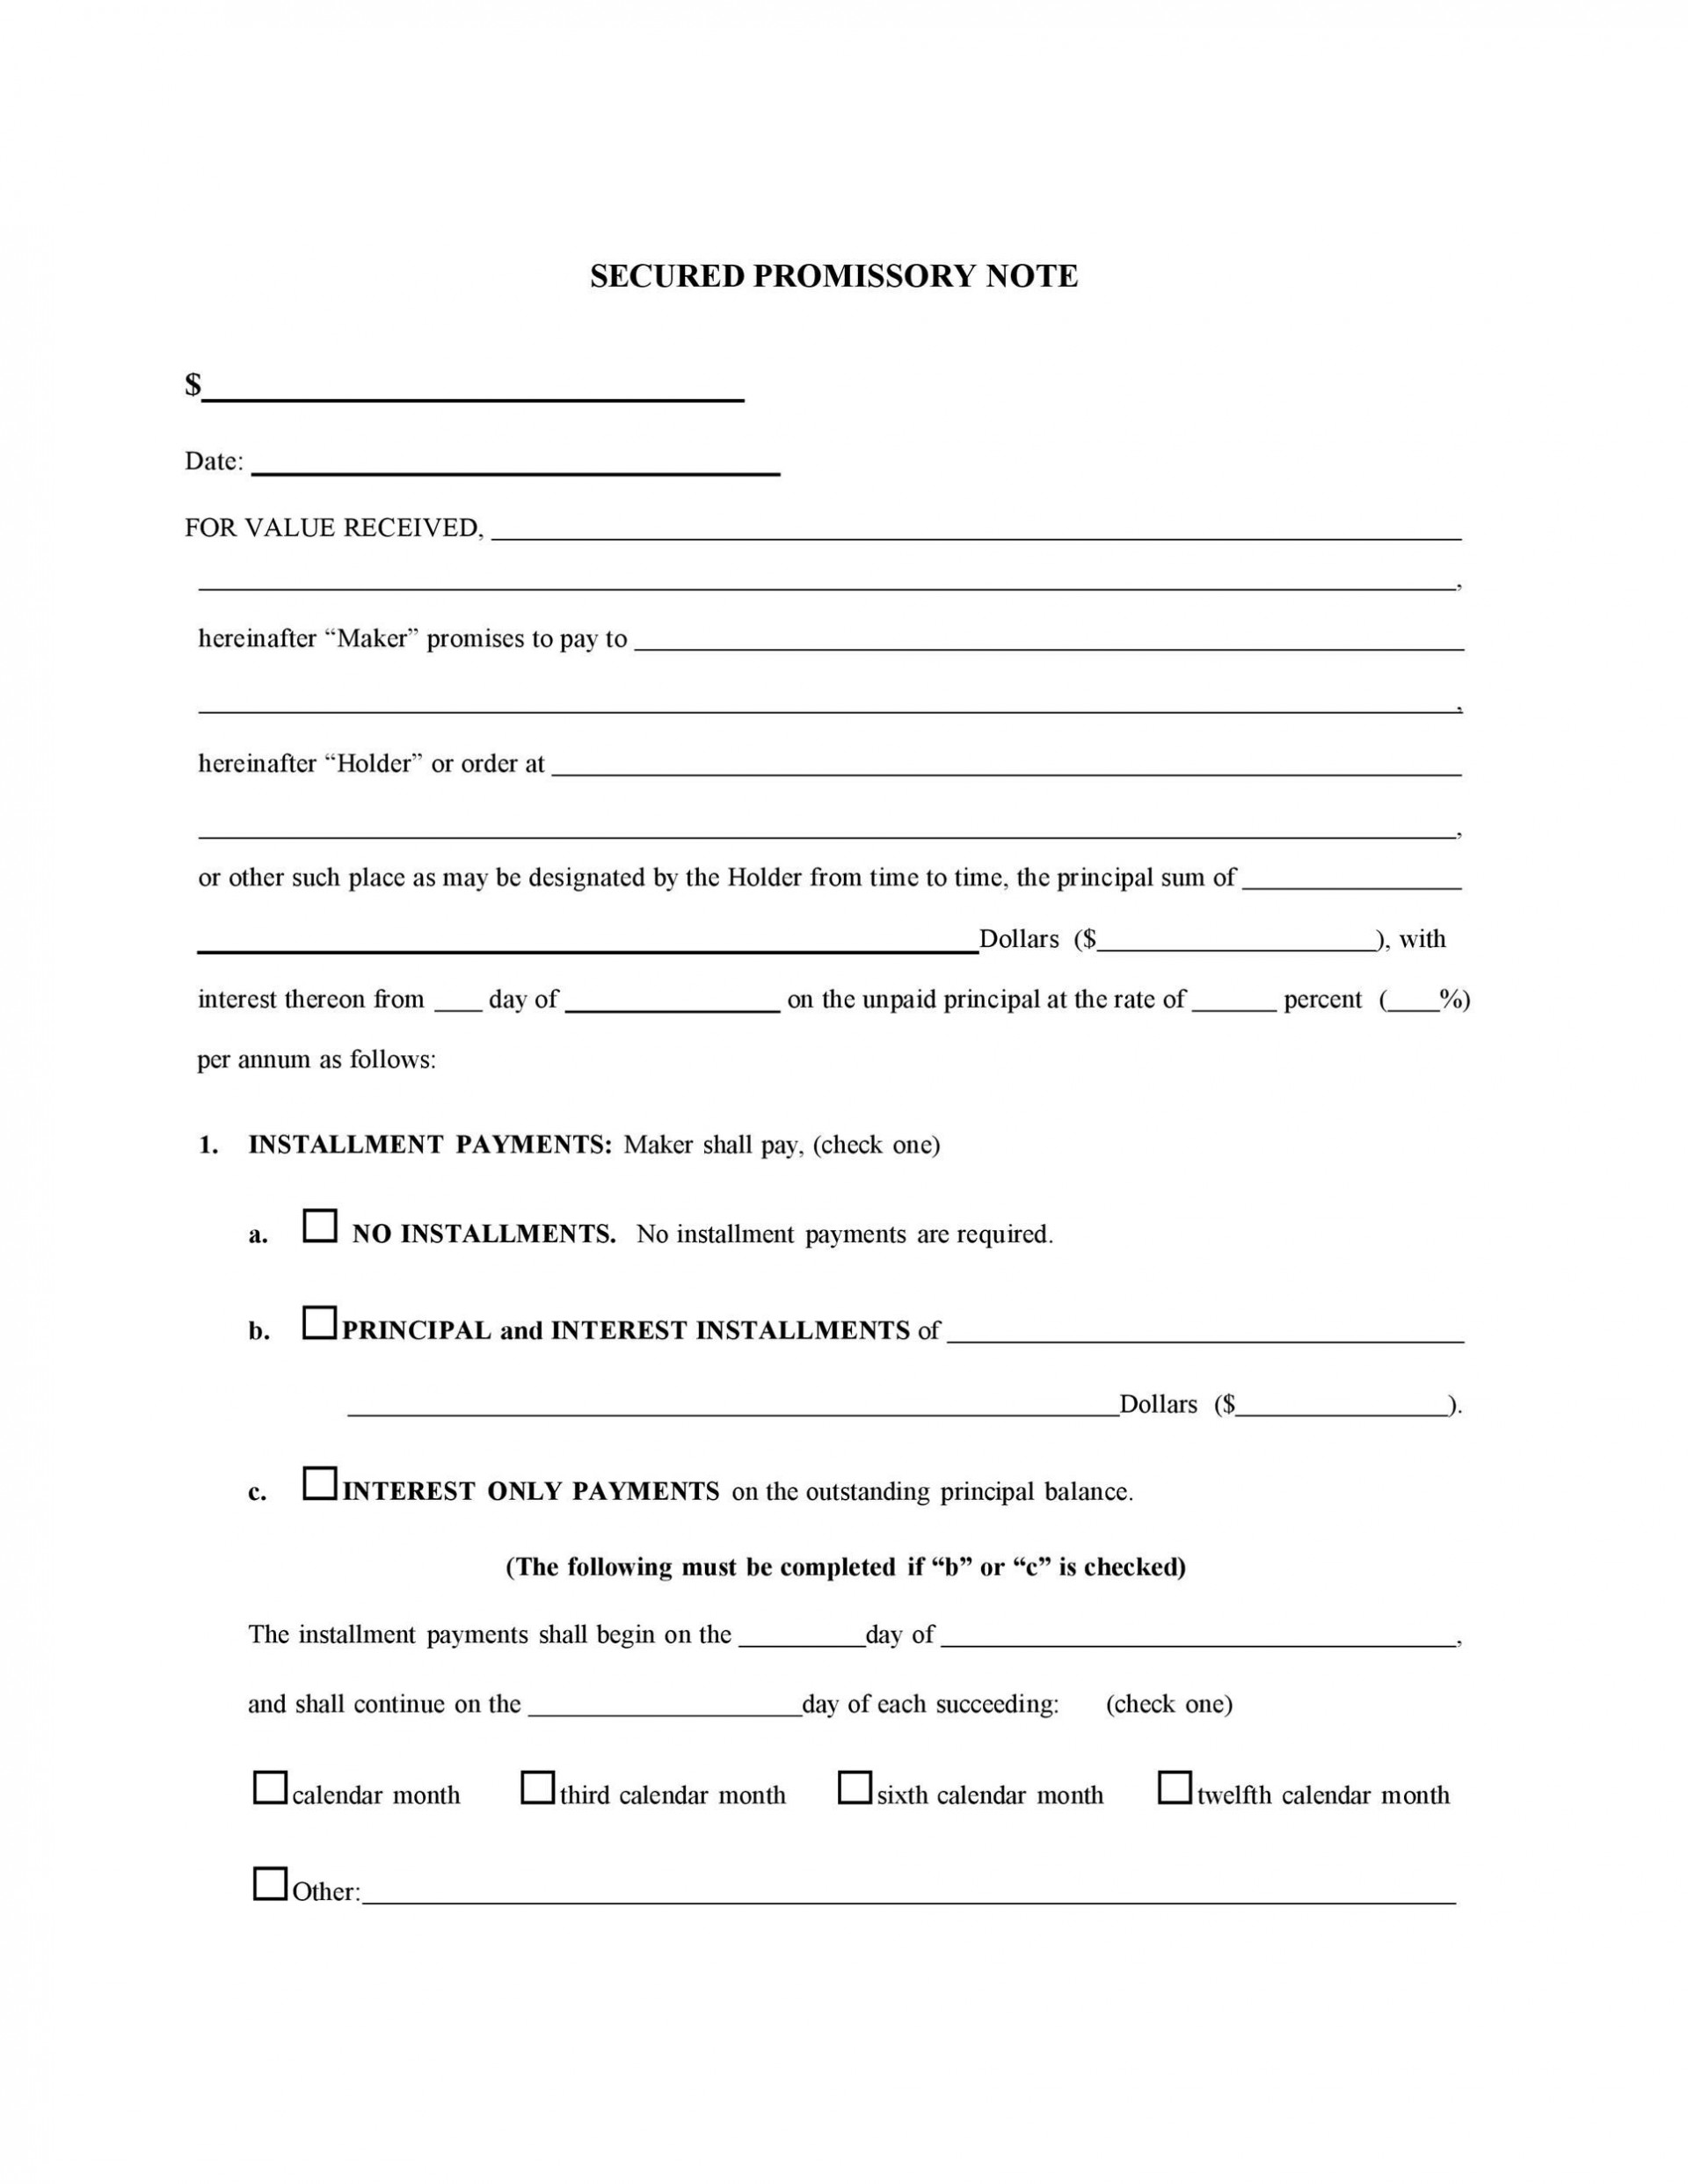 008 Fascinating Promissory Note Template Free Photo  Pdf Florida Blank Form1920